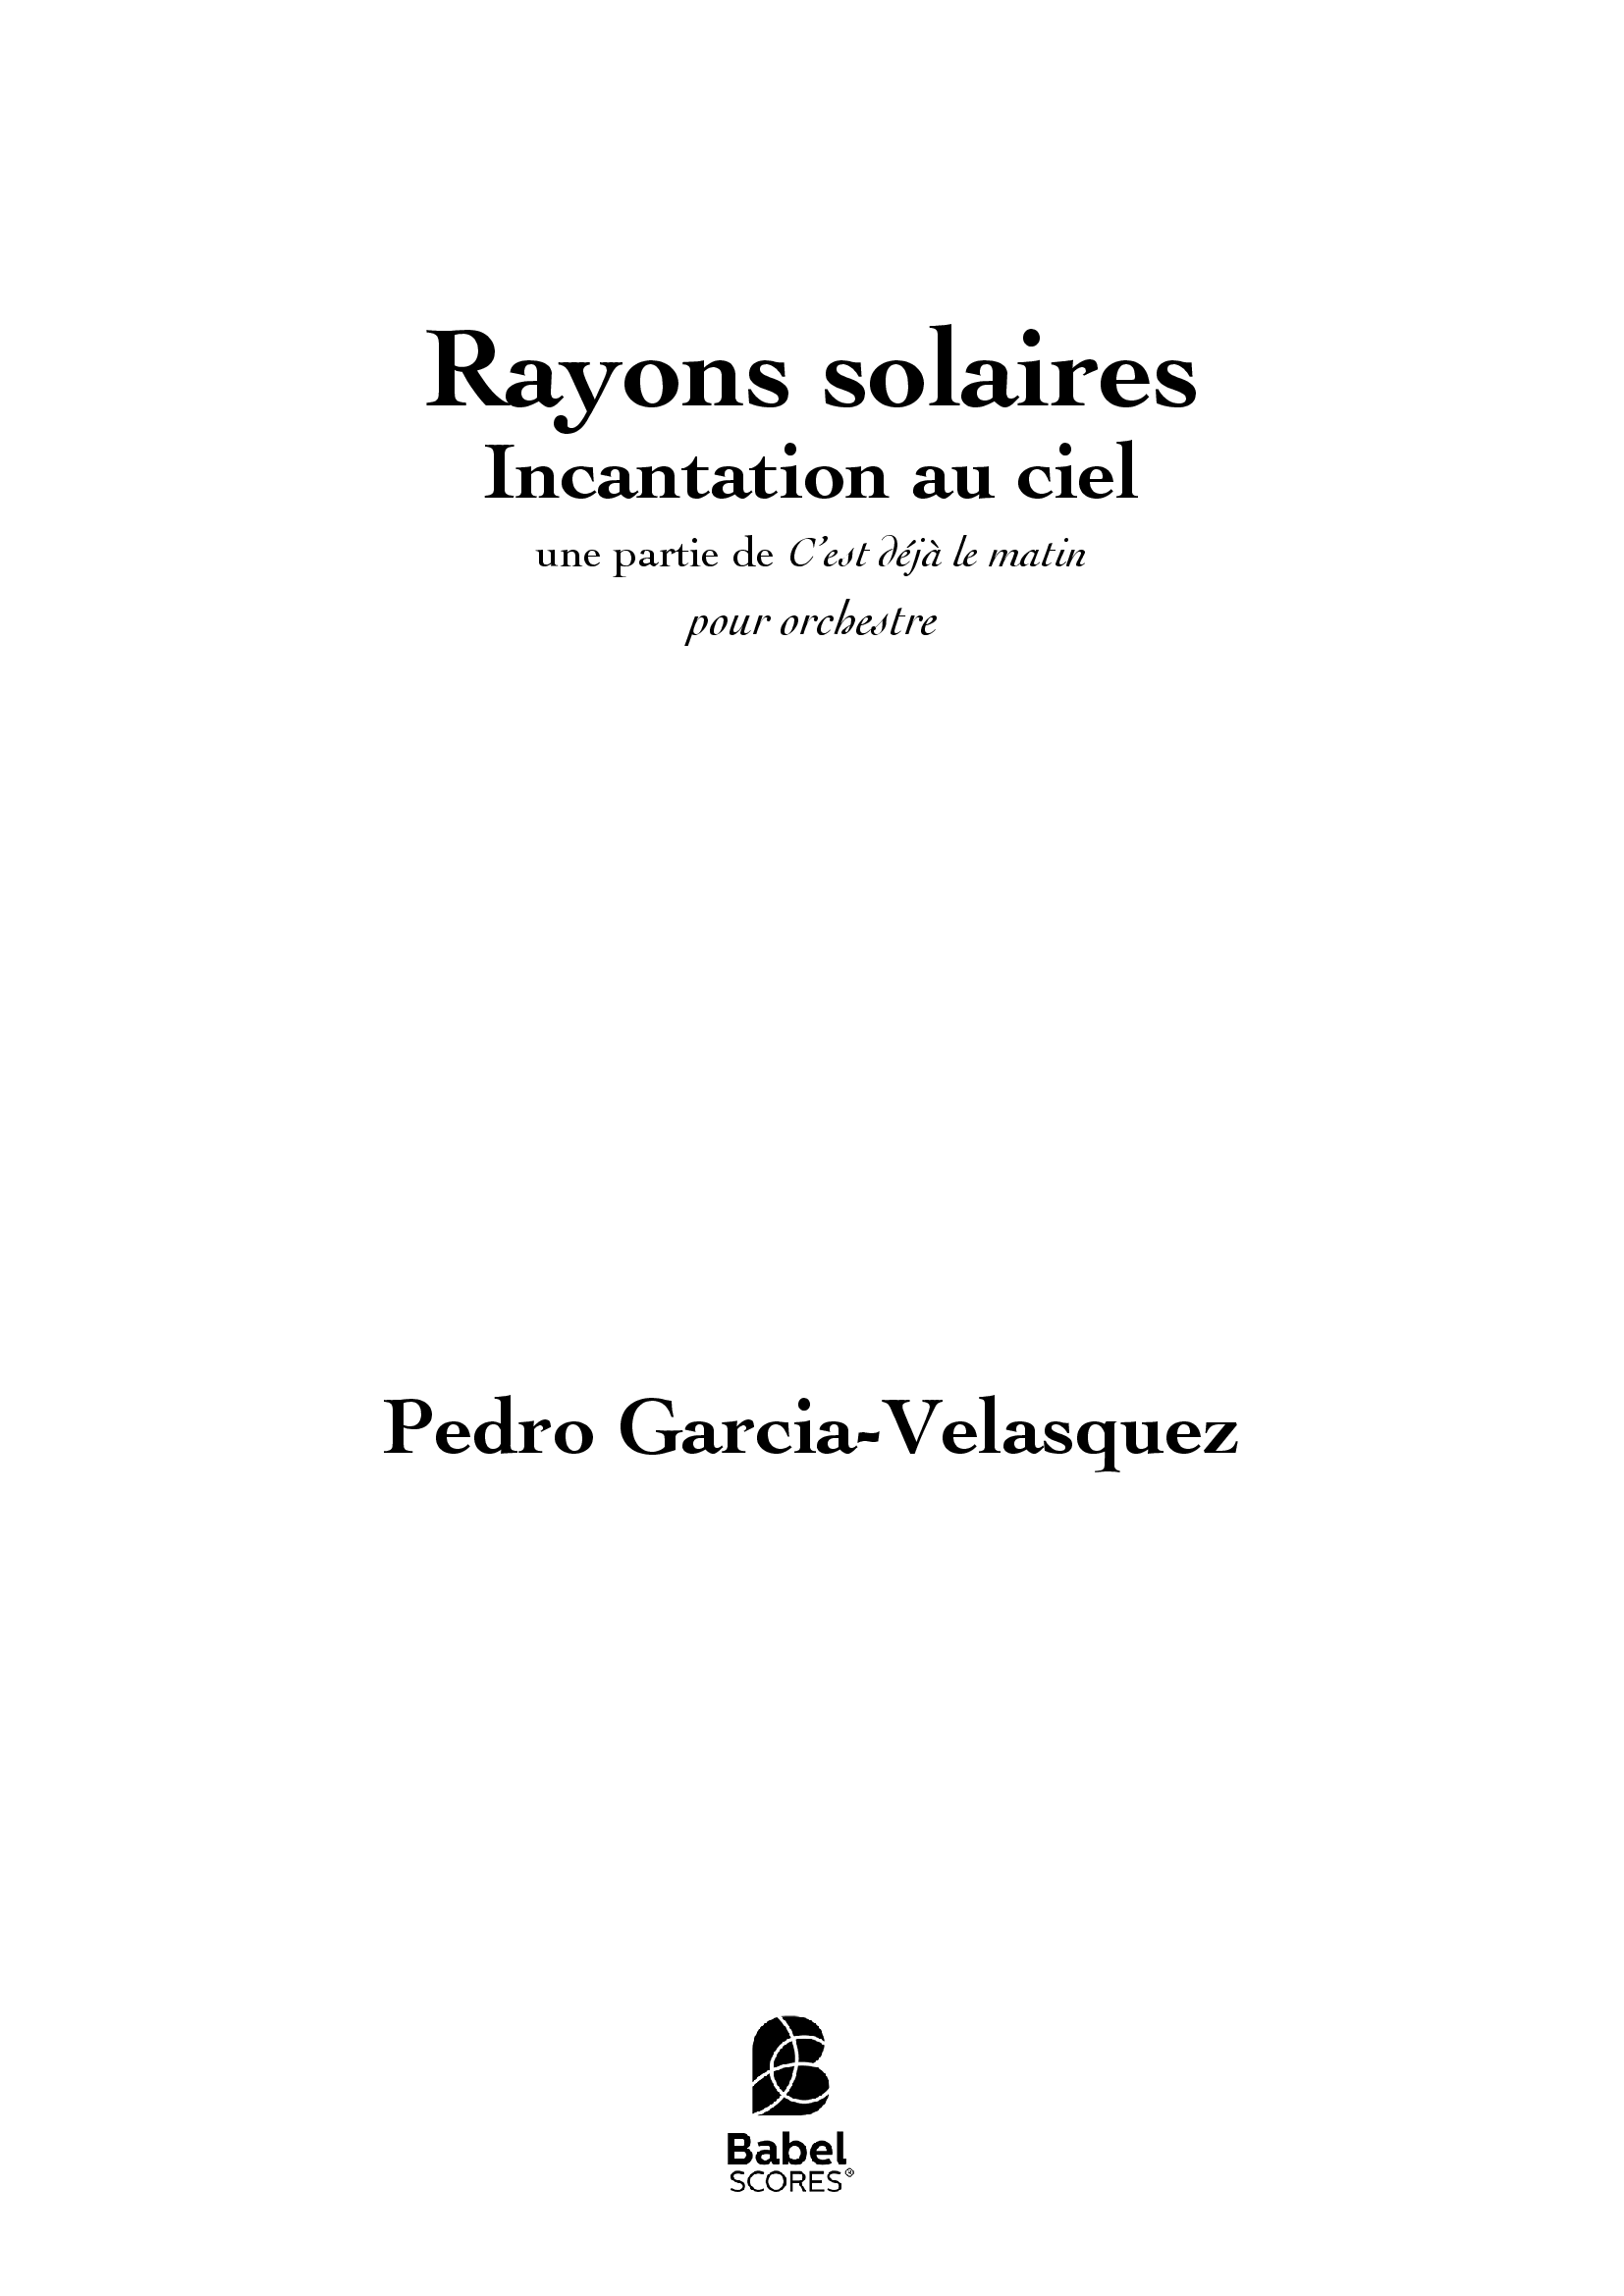 Rayons solaires A4 z 2 100 1 909